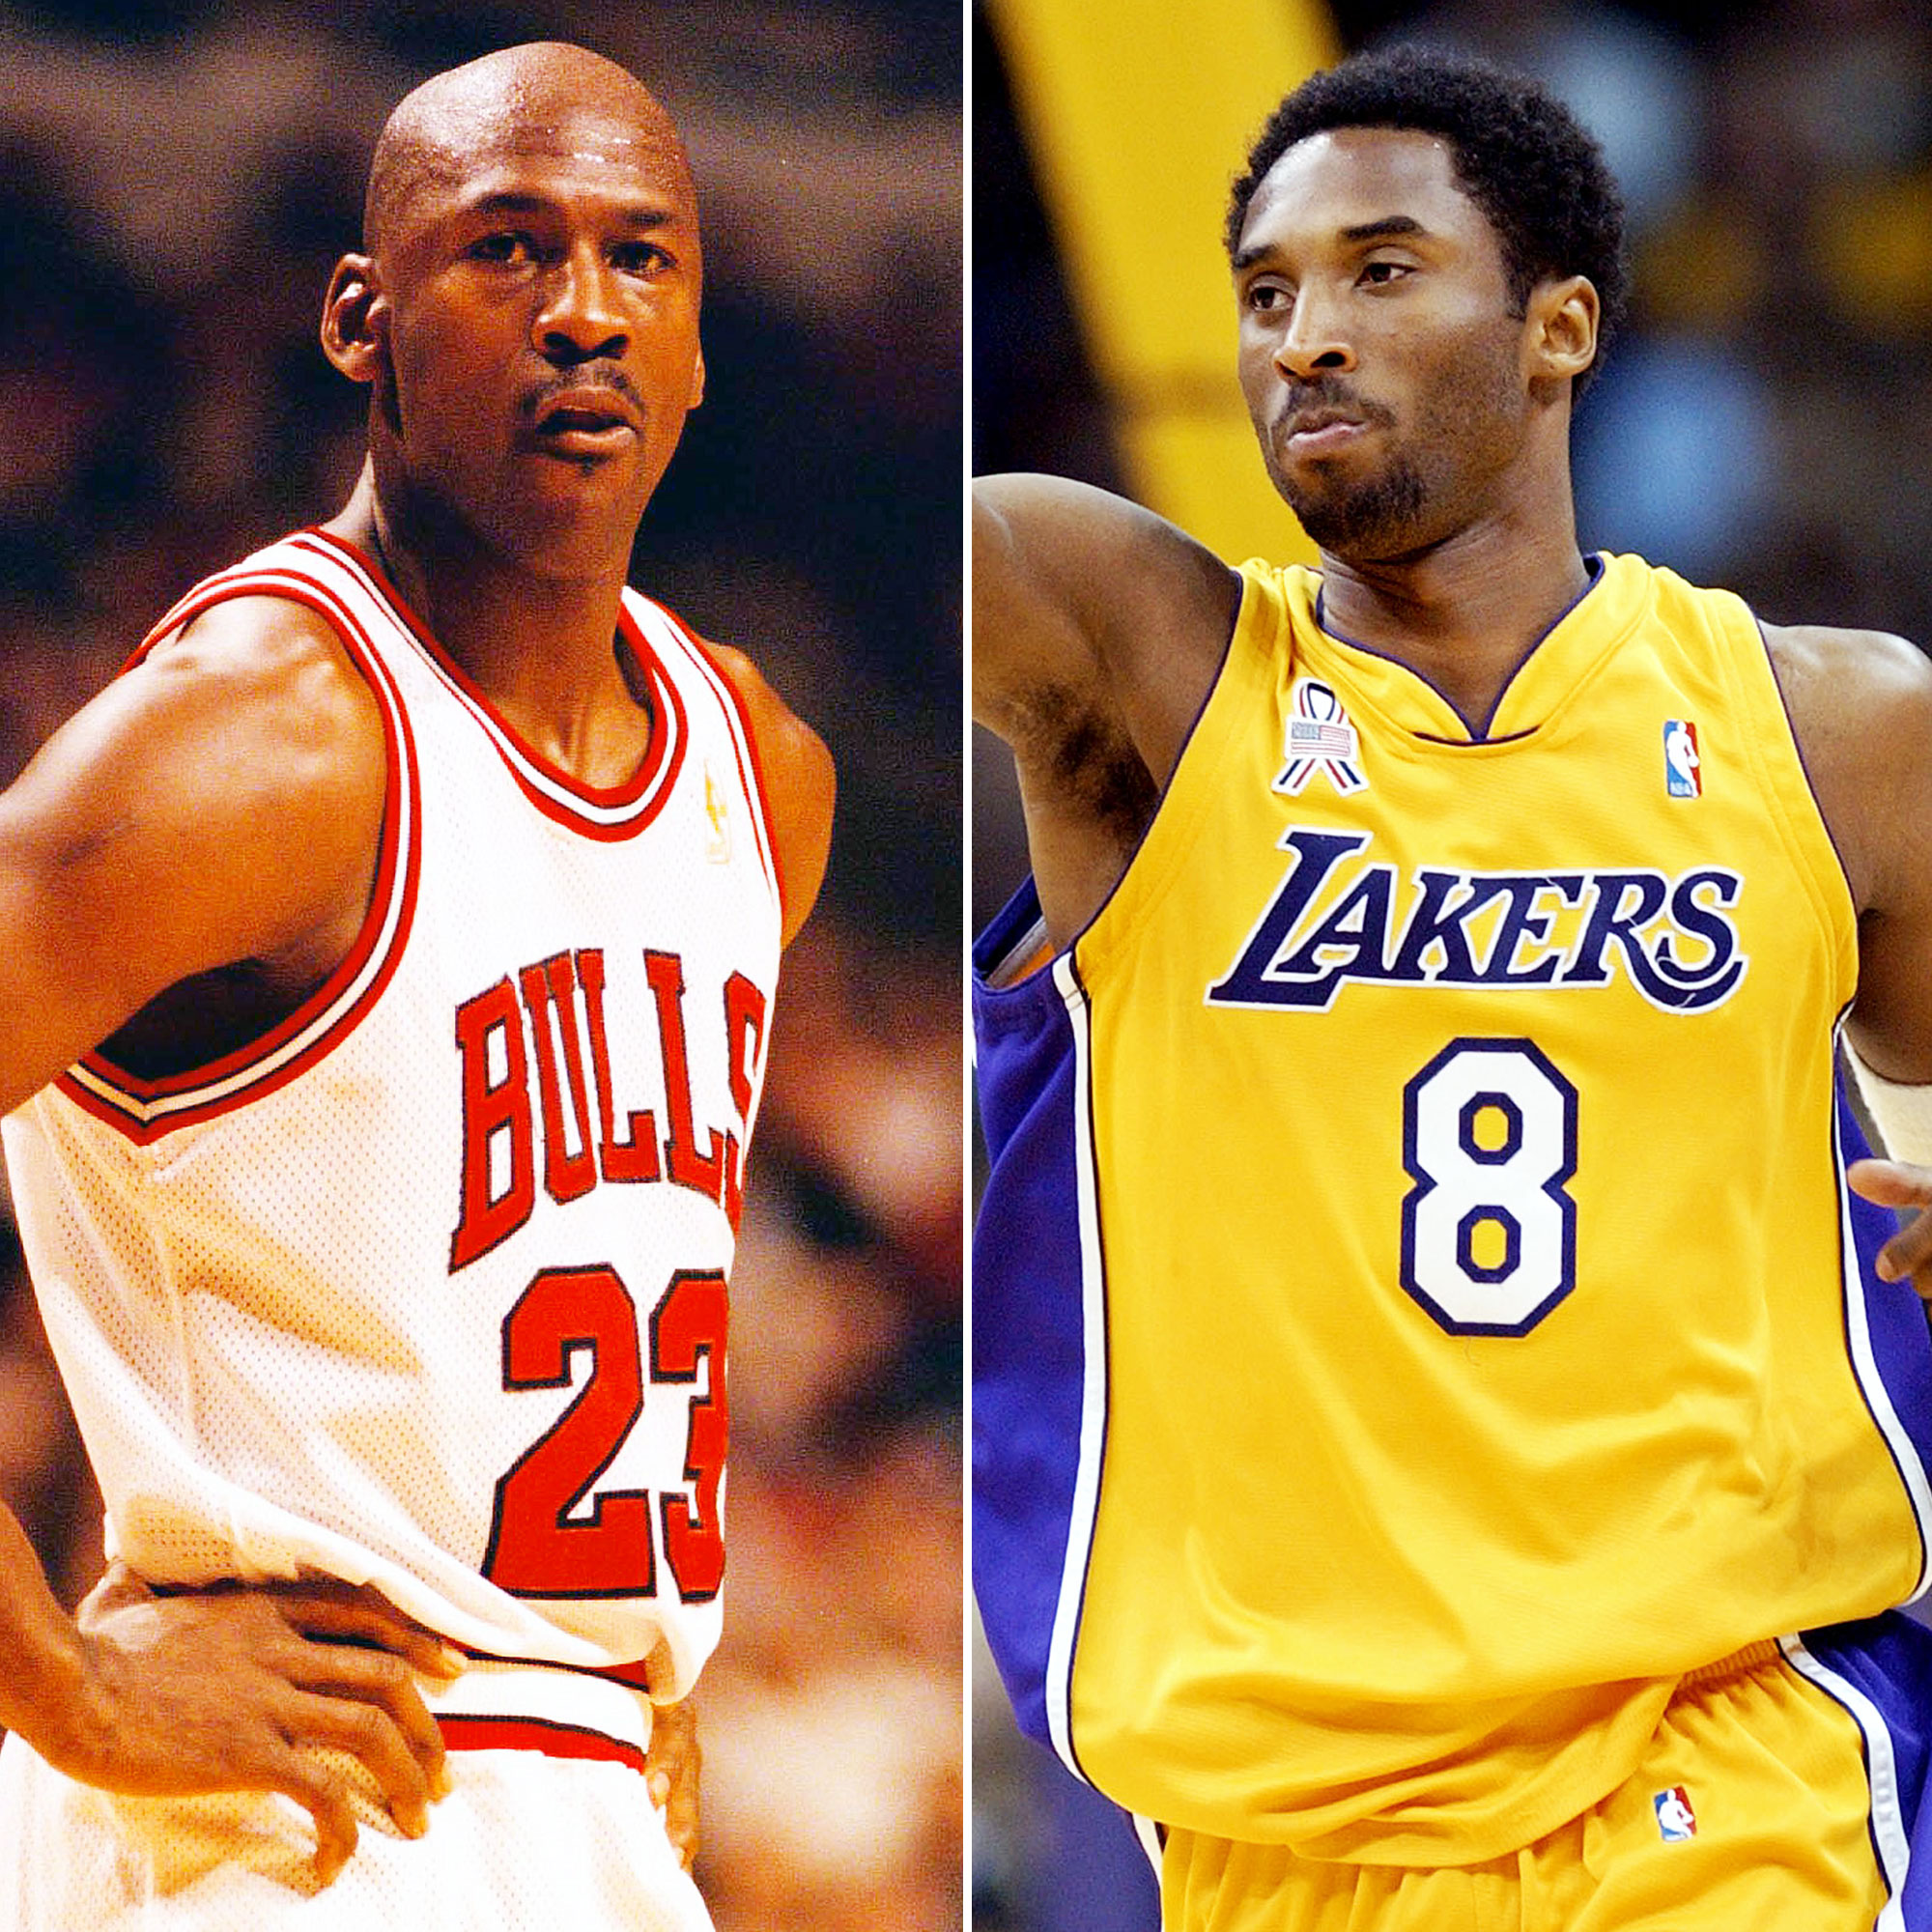 Michael Jordan Remembers Little Brother Kobe Bryant After His Death